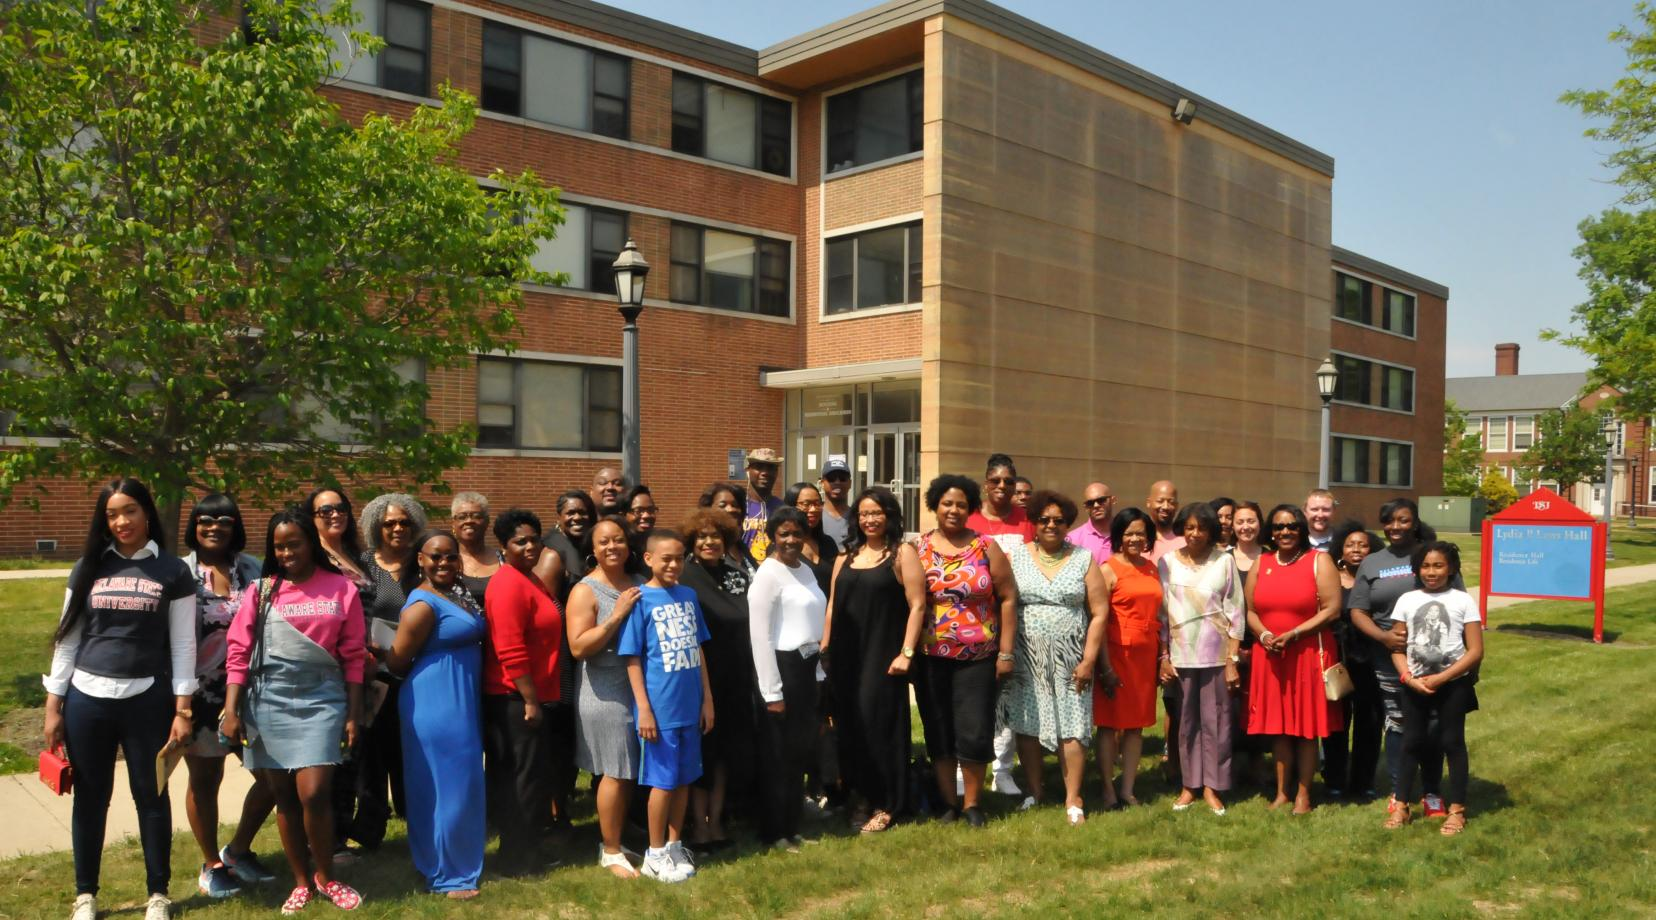 <p>A group of alumni and current DSU community members gathered May 12 to share memories about Lydia Laws Hall, which will soon be demolished to make way for a new residential facility.</p>